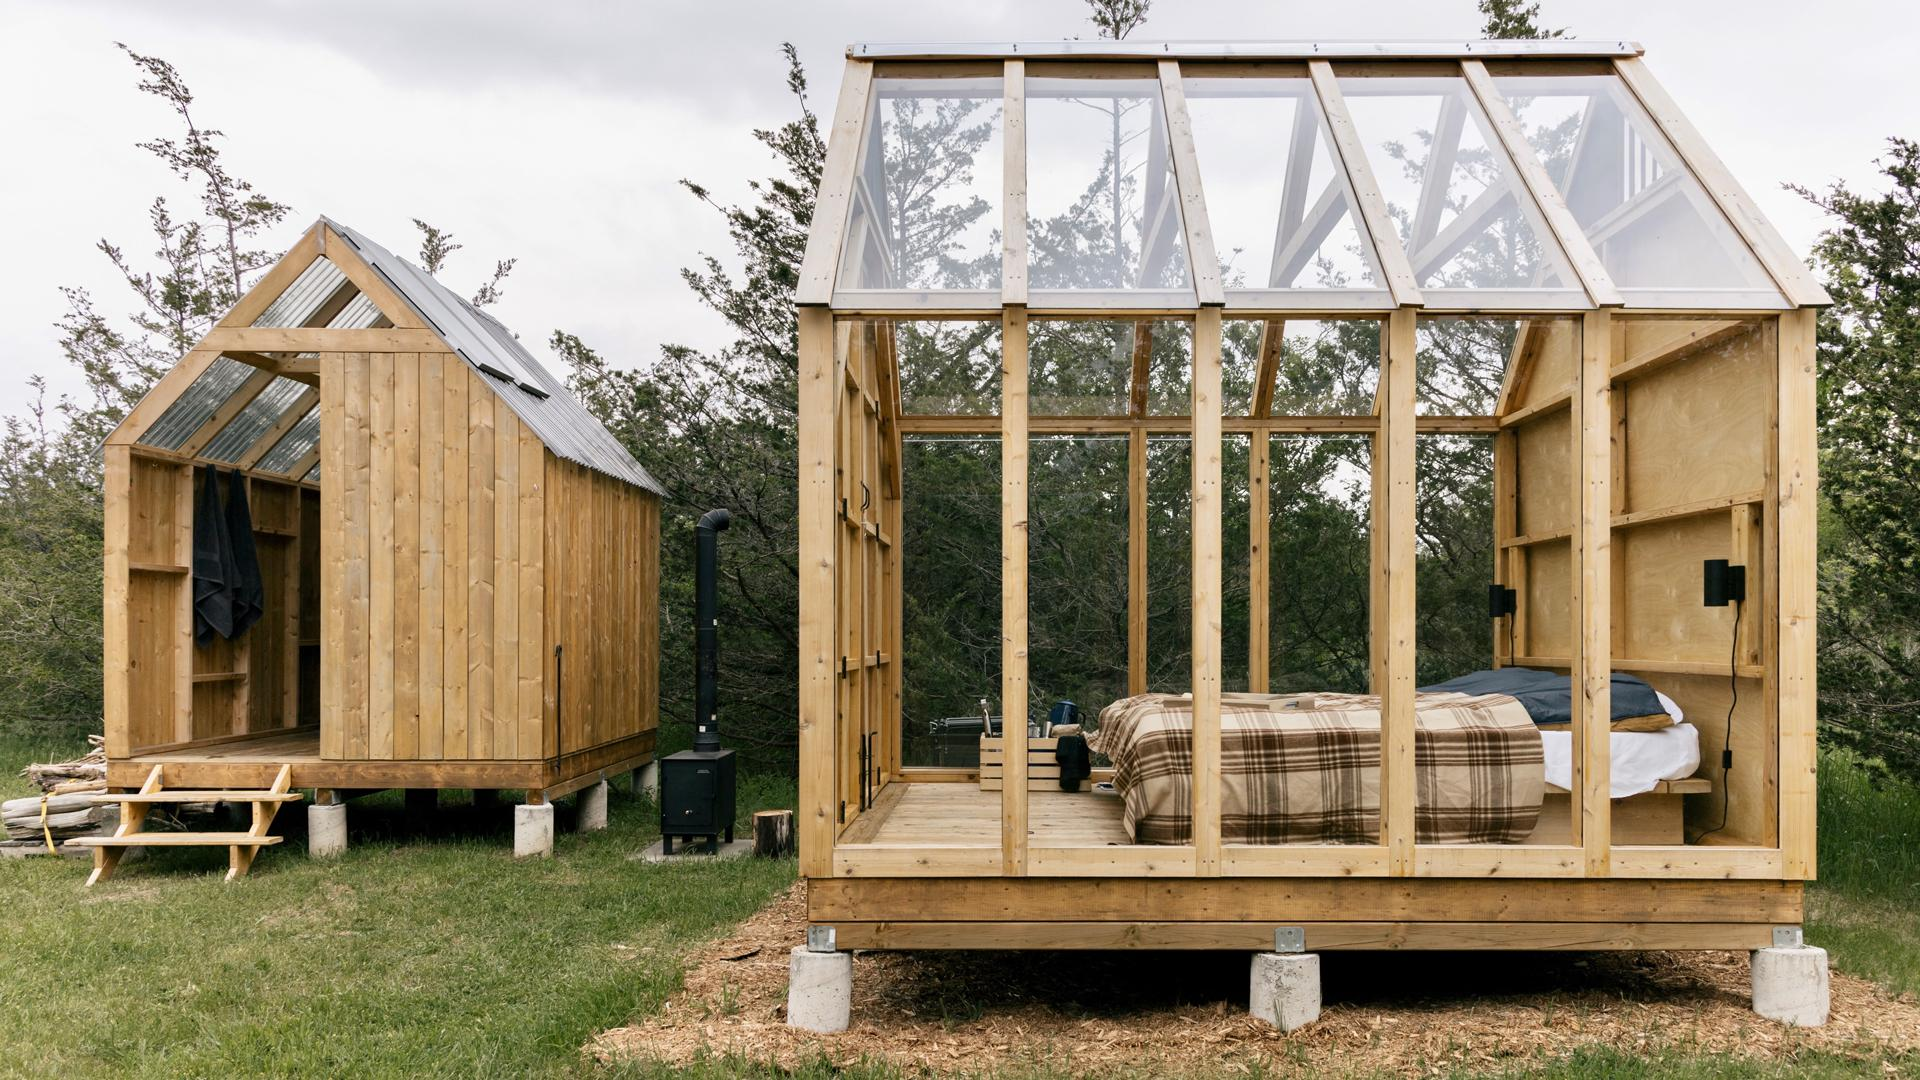 Ontario's coolest cabins to rent | The Edward's Skyward cabin has glass walls and a glass roof for stargazing